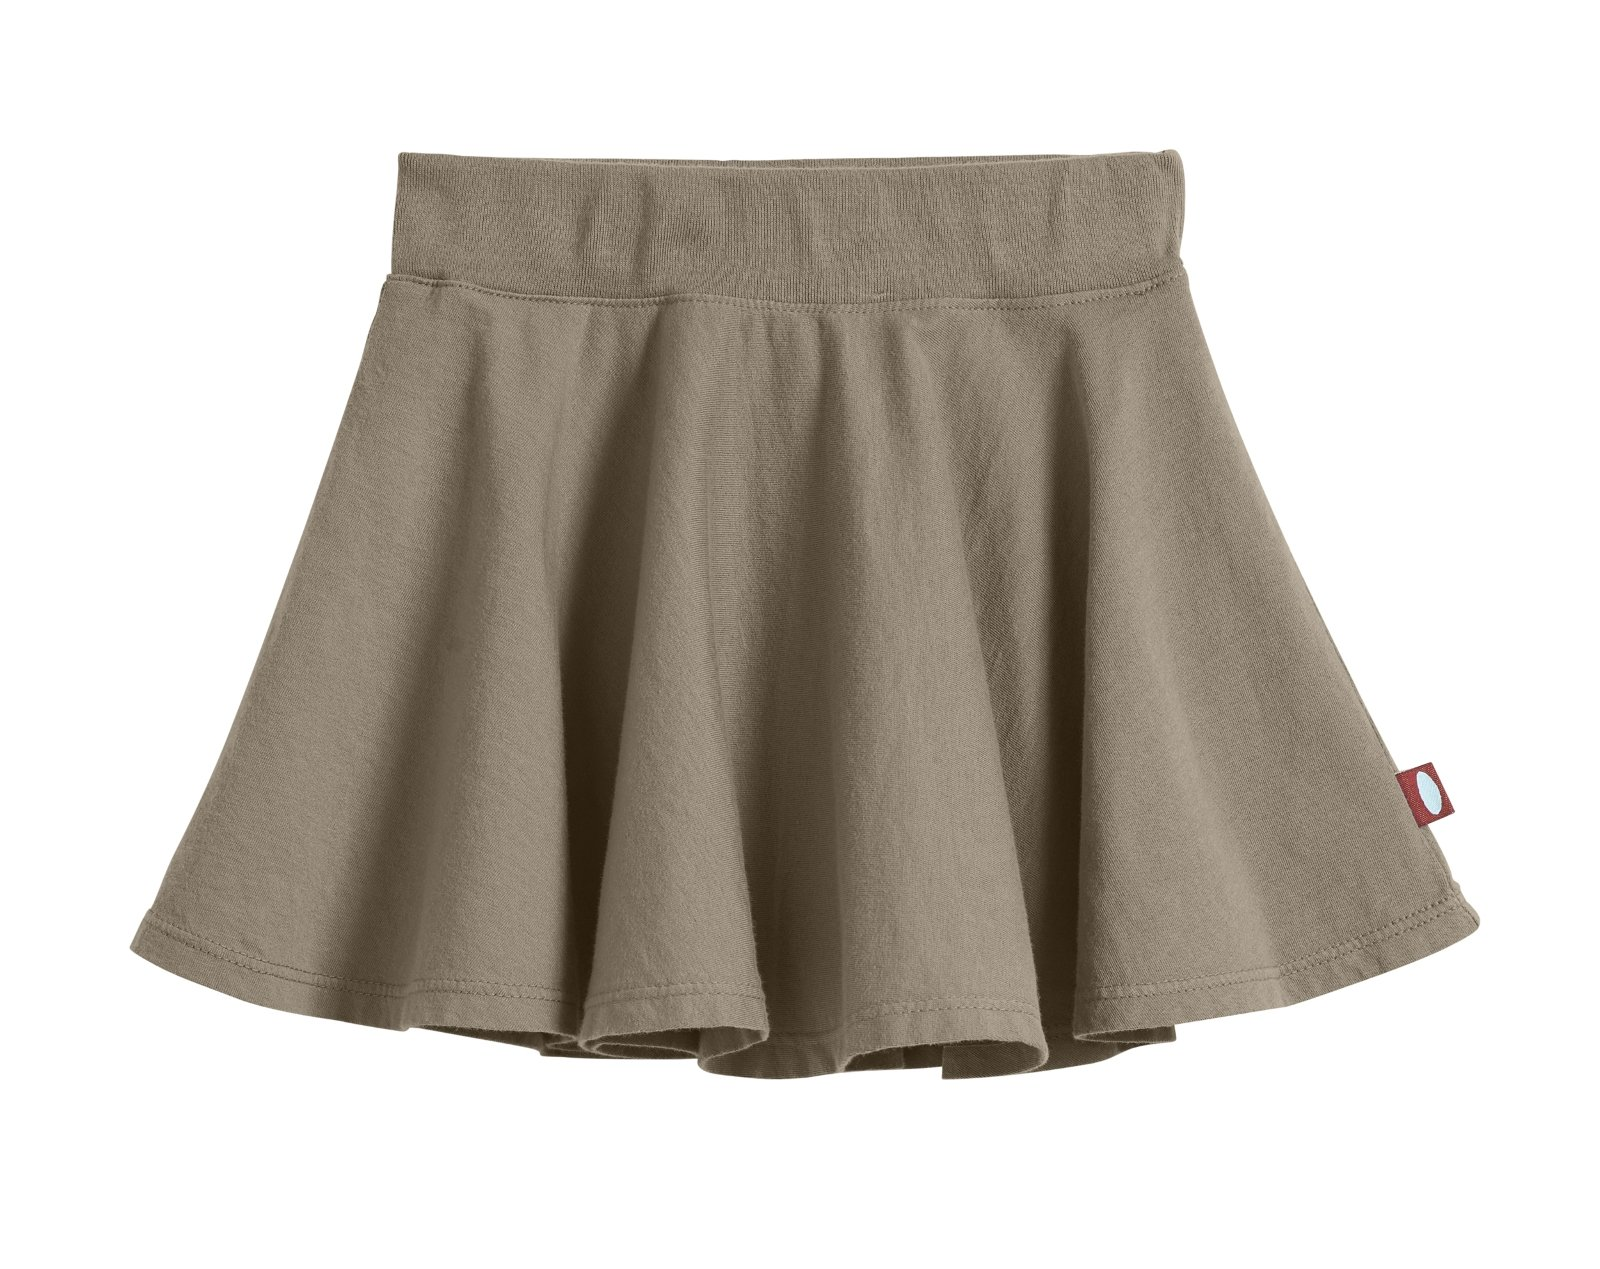 City Threads Big Girls' Cotton Twirly Skirt Perfect For Sensitive Skin/SPD/Sensory Friendly For School or Play Fall/Spring, Dark Khaki, Size - 16 by City Threads (Image #1)